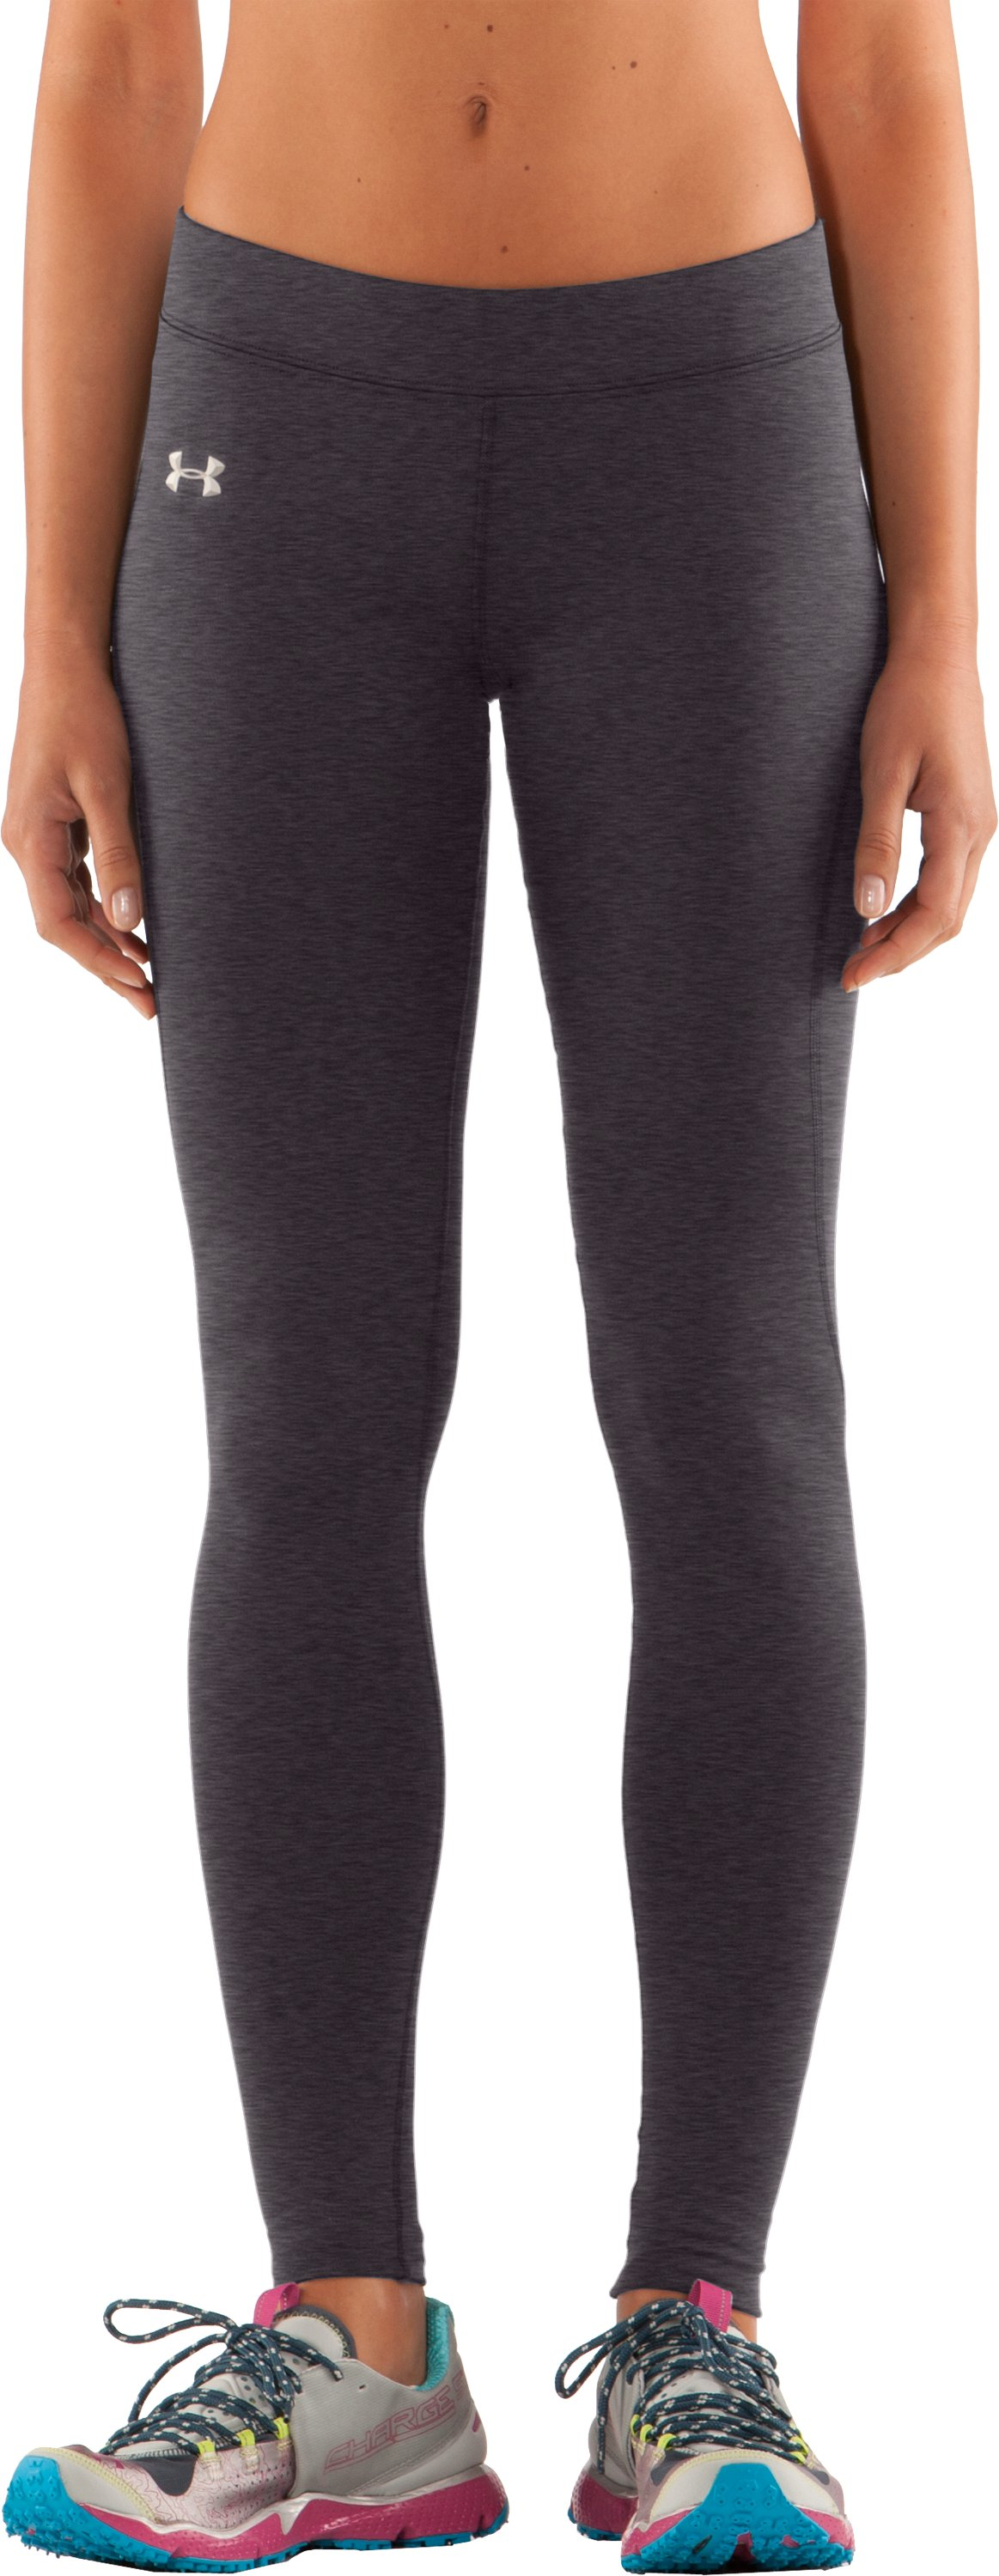 Women's ColdGear® Fitted Leggings, Carbon Heather